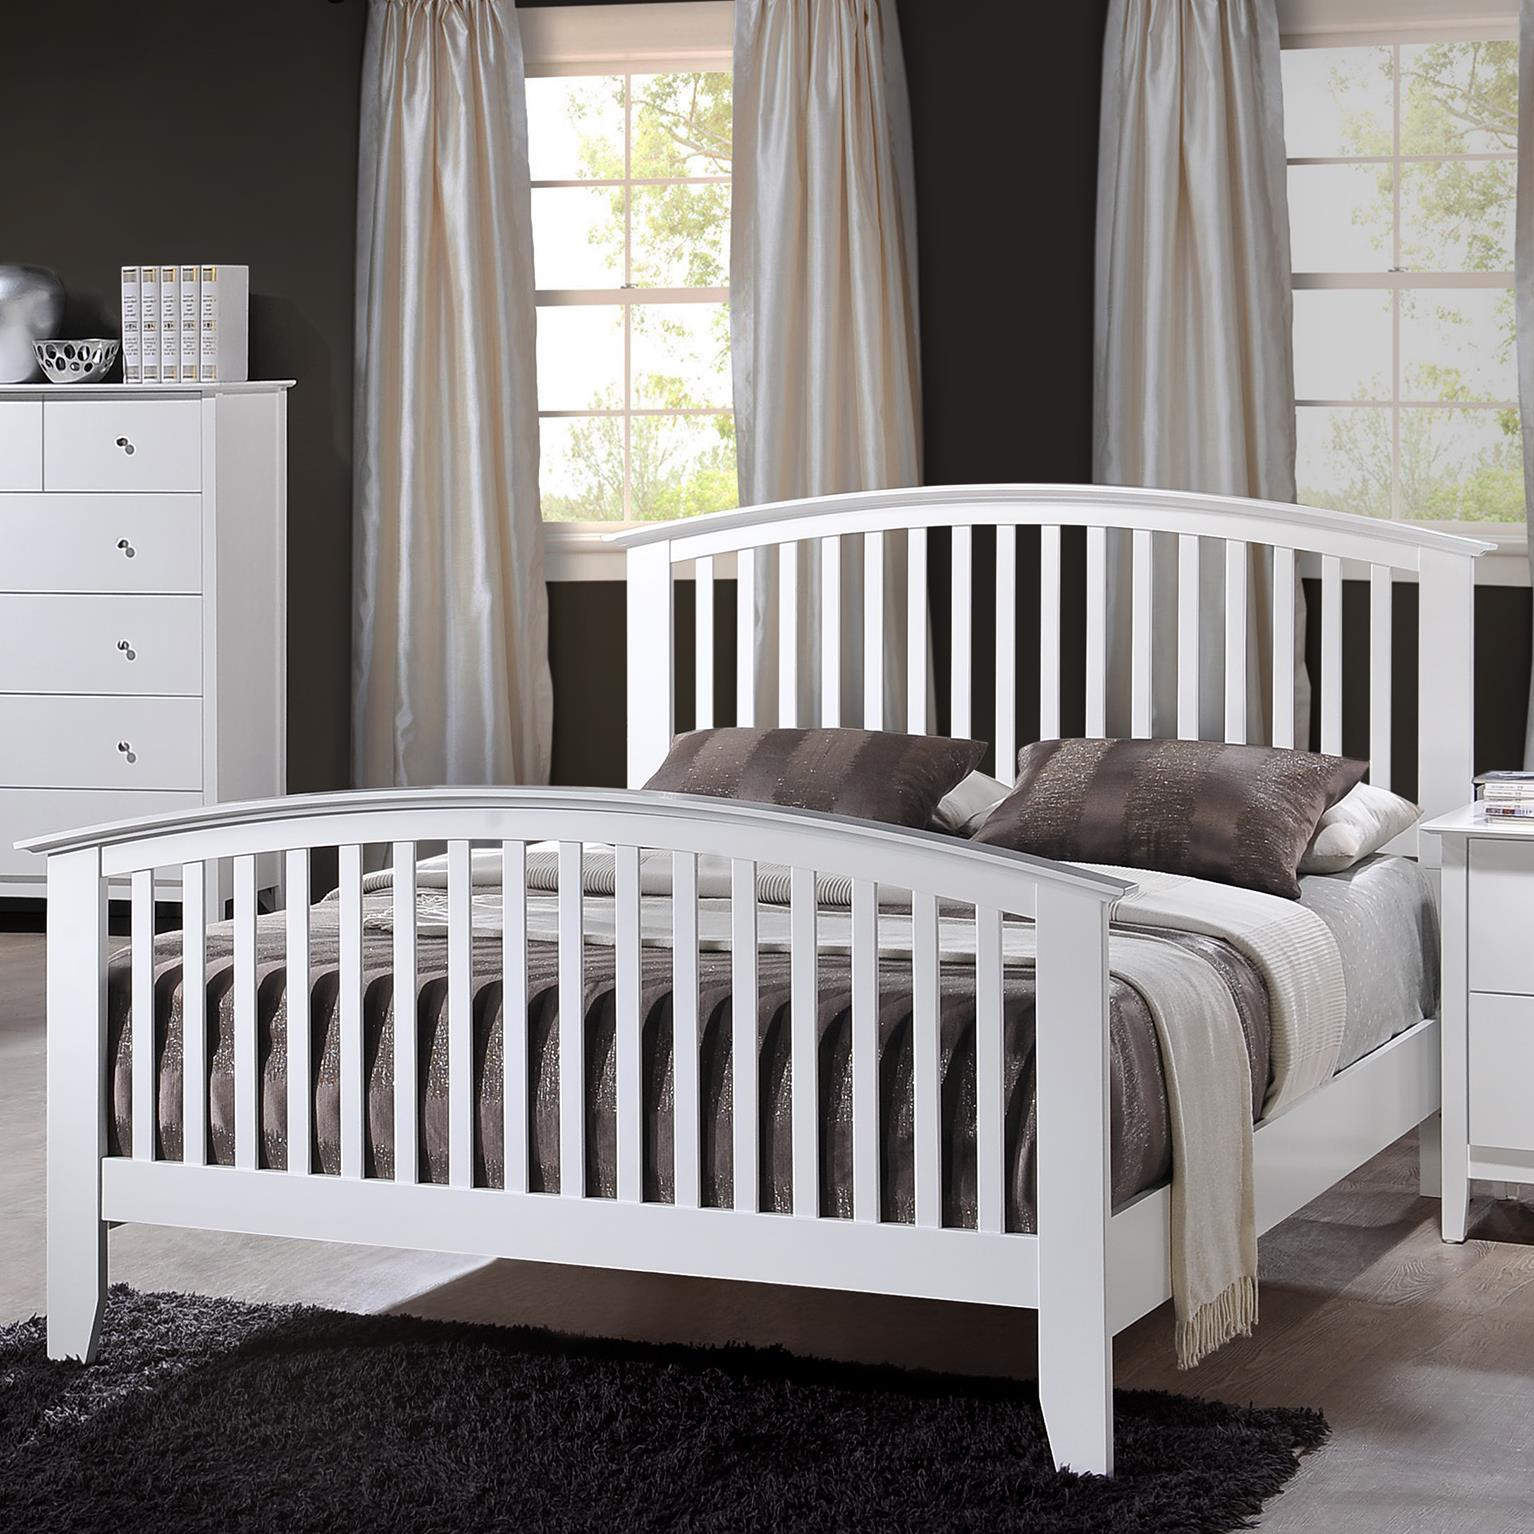 Crown Mark Lawson Queen Slat Bed - Item Number: B7500-Q-HBFB+KQ-RAILS